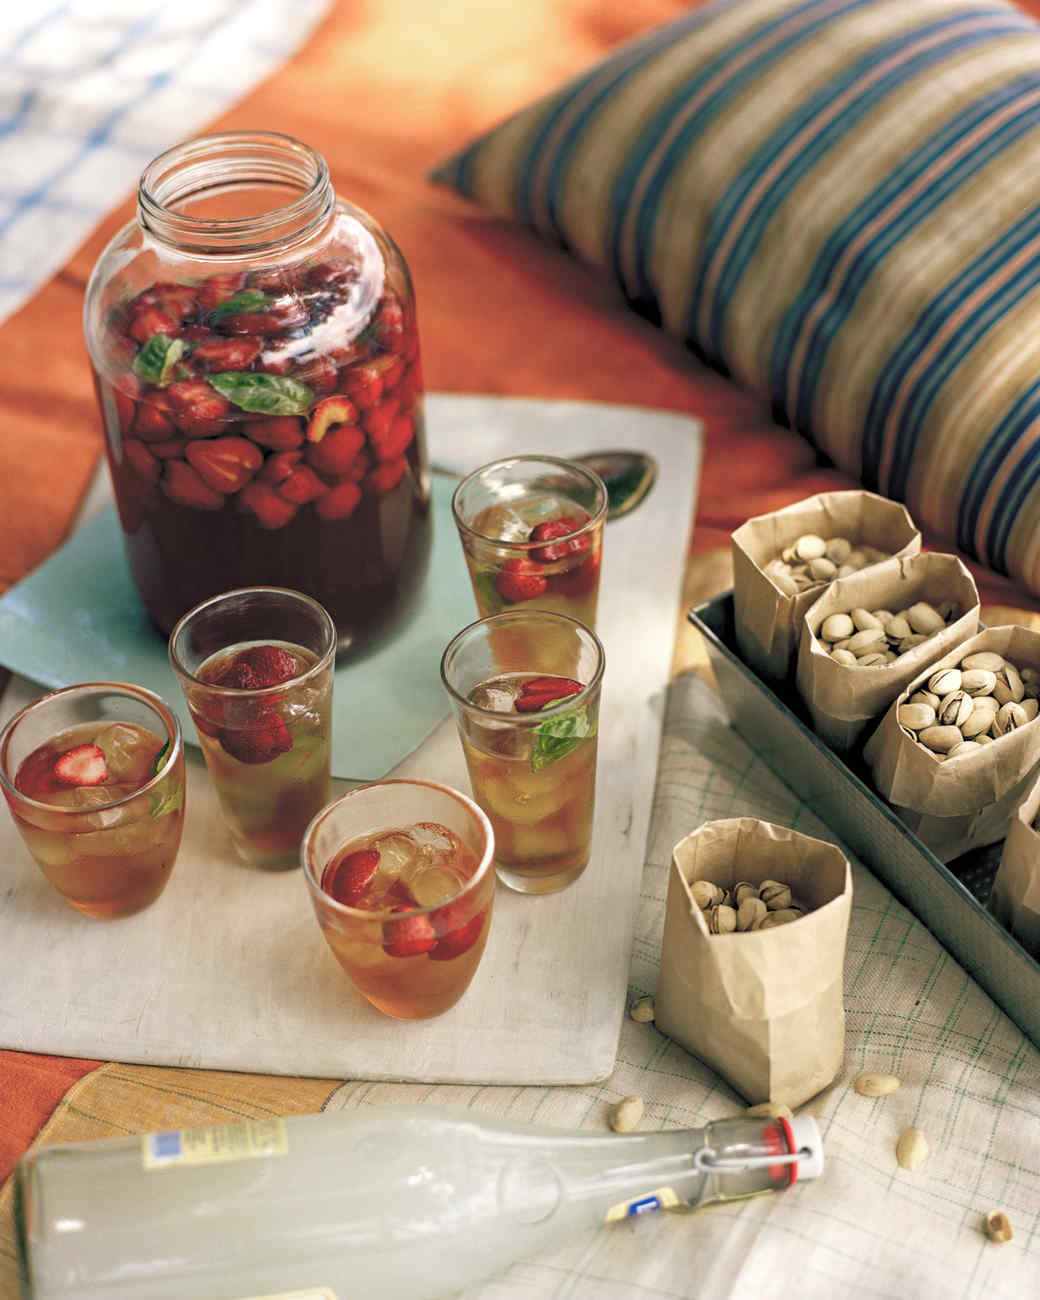 Strawberry-Basil Iced Tea